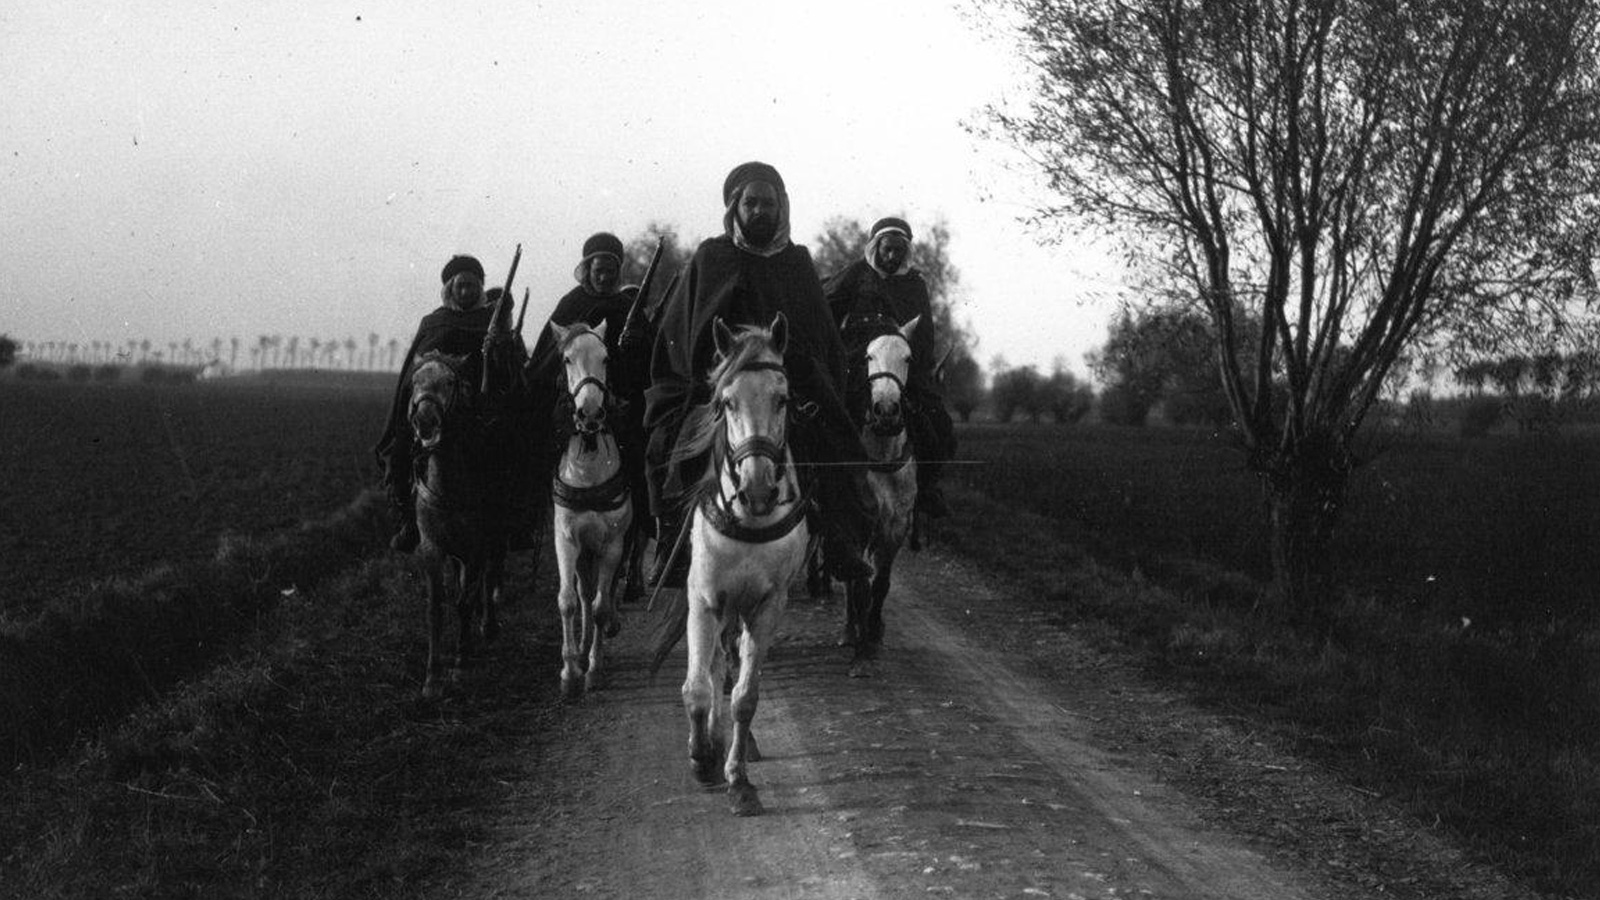 Banner for colonial troops article. 4 soldiers feature in a black and white photograph. They are cantering along a road on horses, they are wearing Sudanese style dress and some have rifles on their backs.